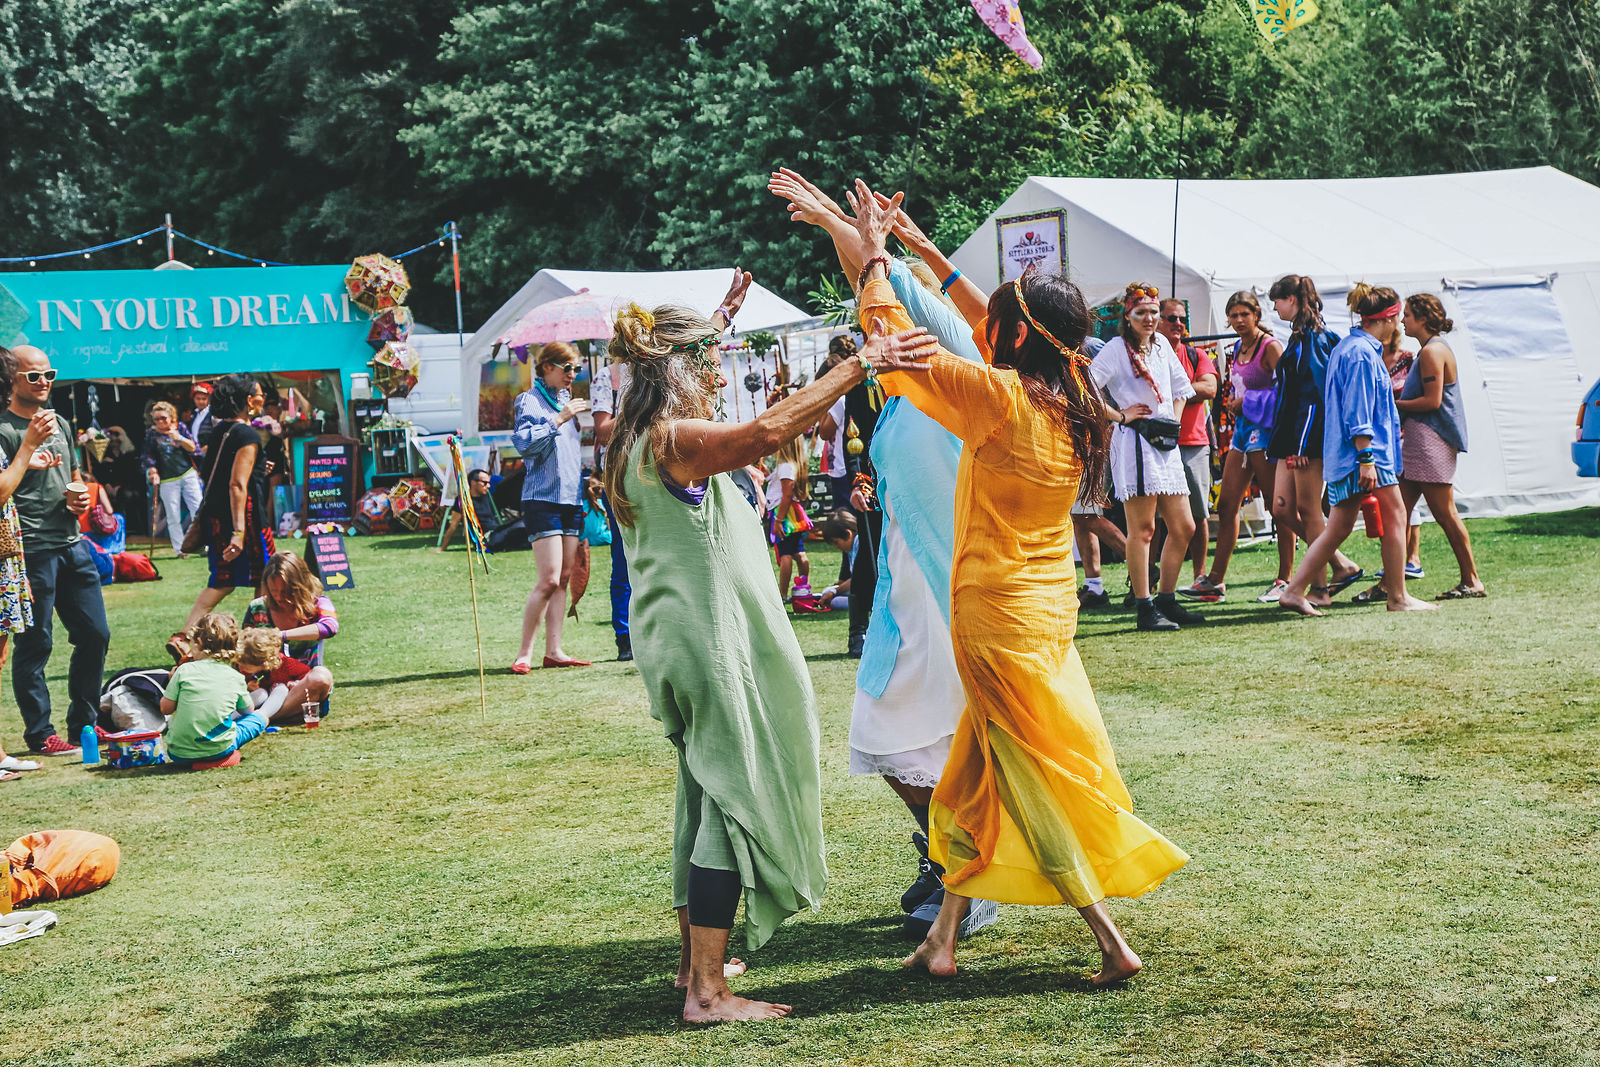 Dancers on the Lawn